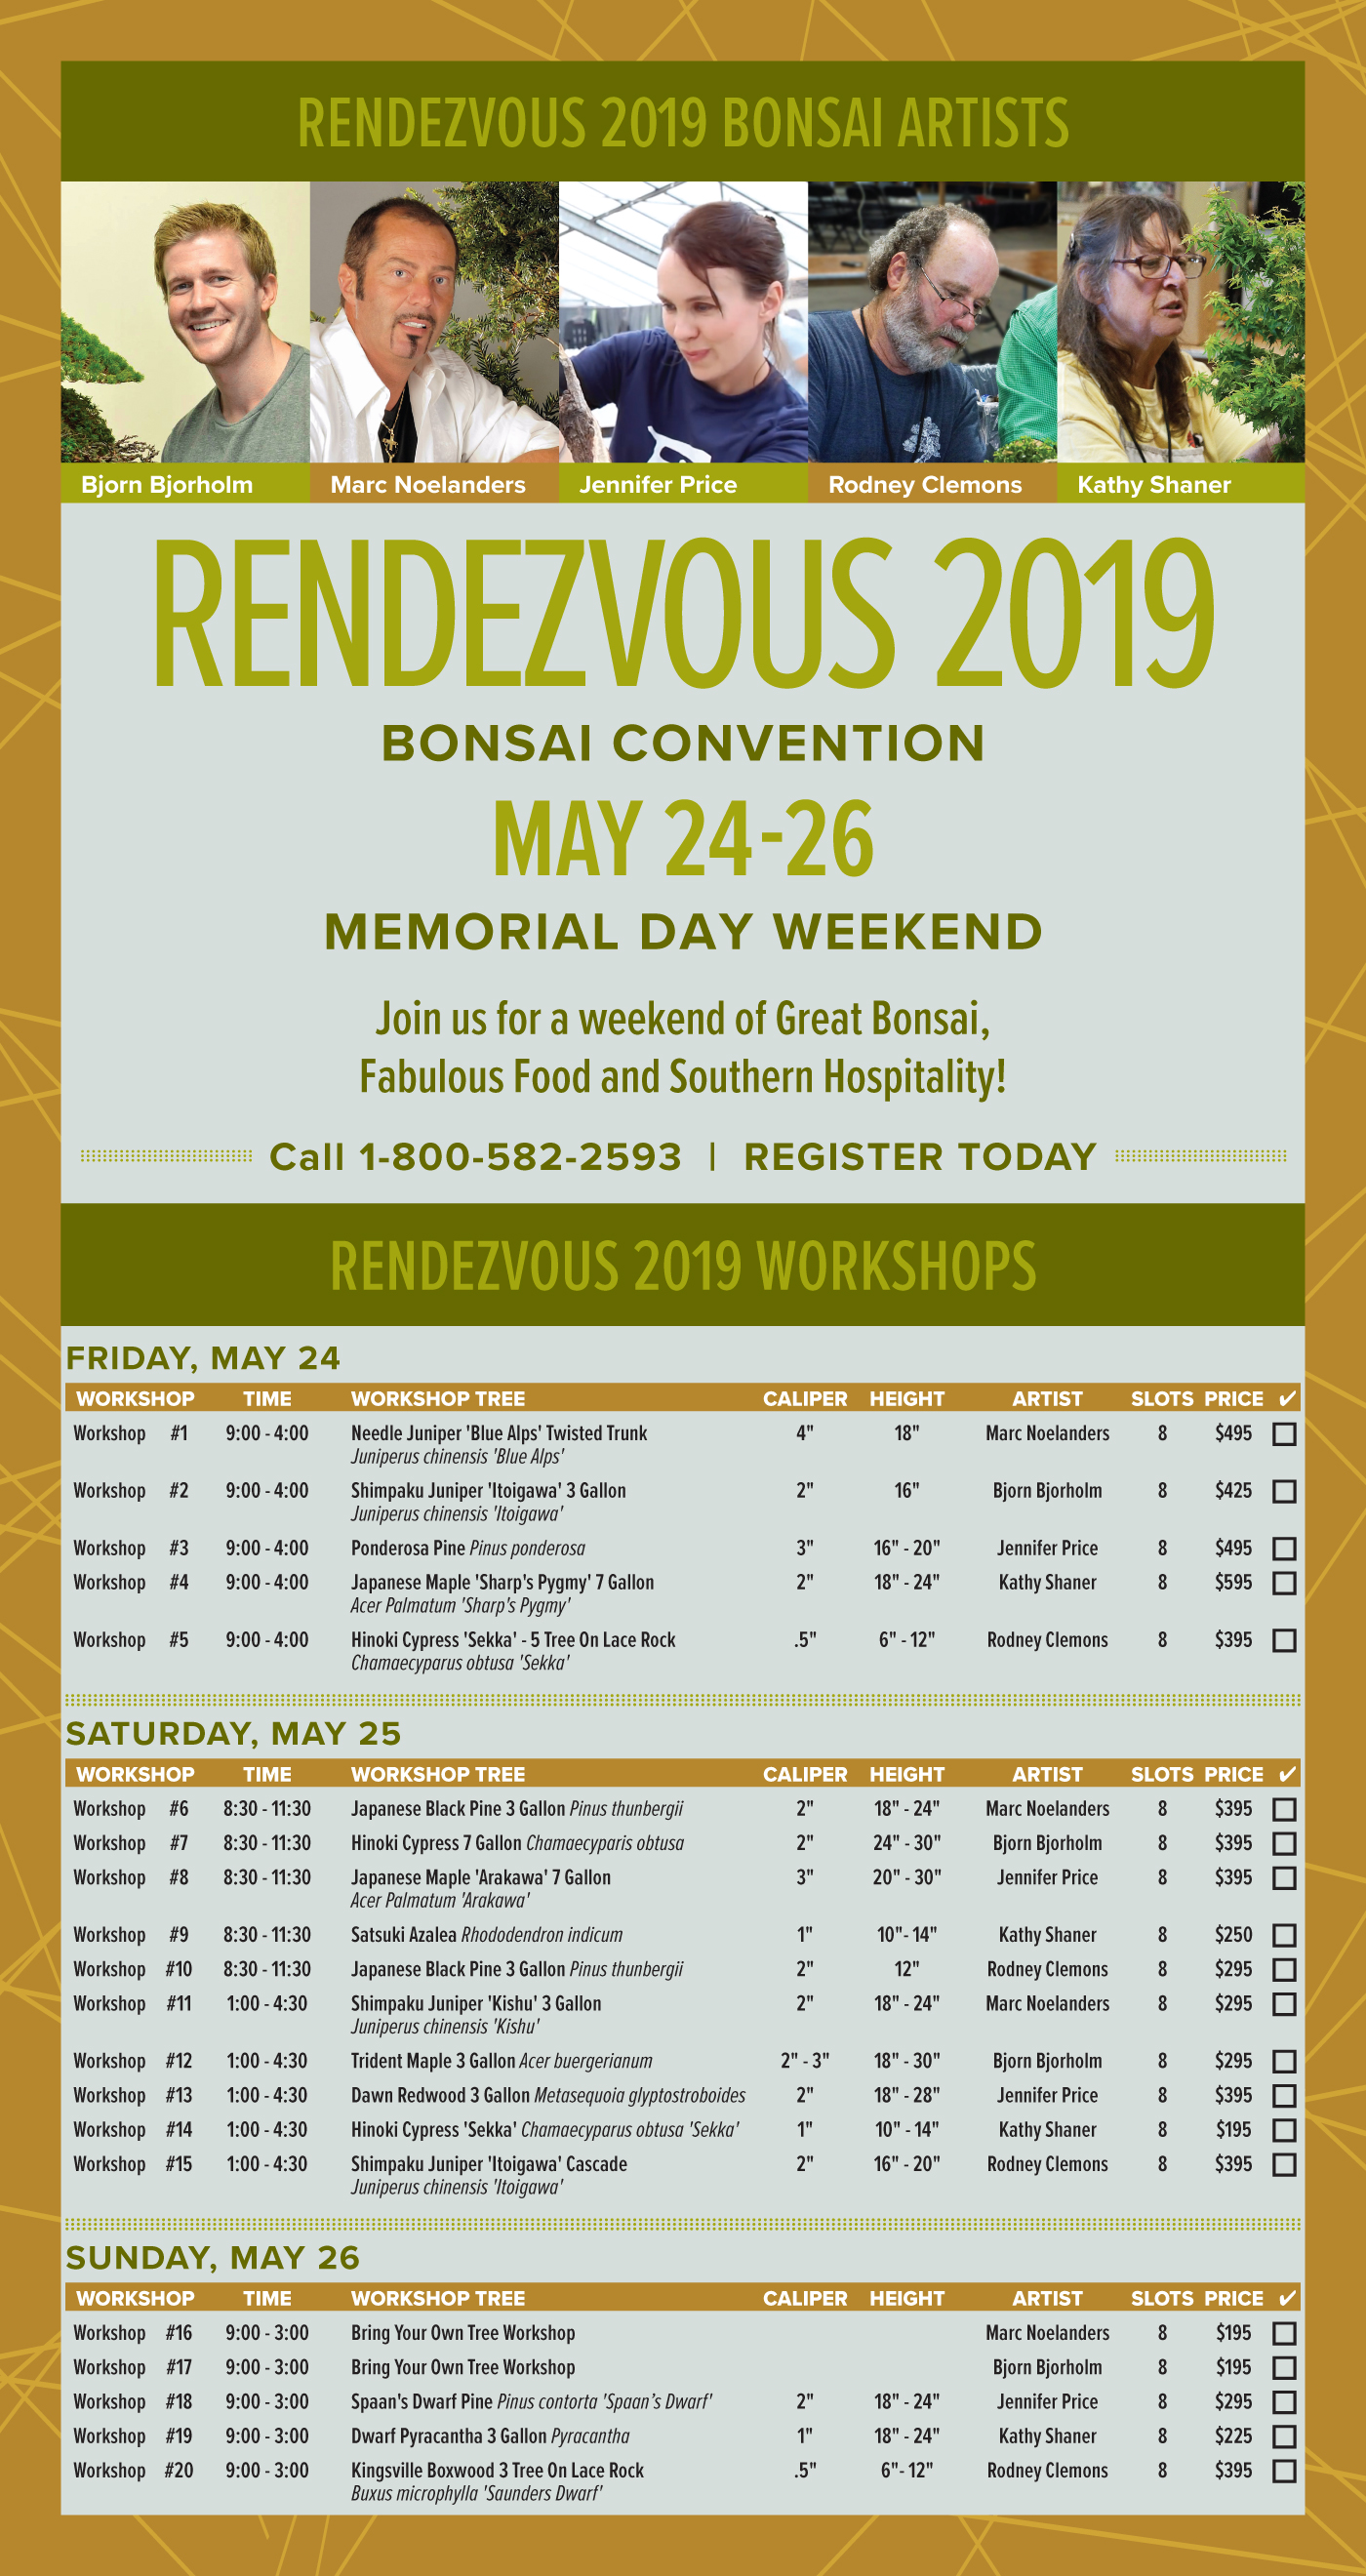 brussels-bonsai-rendezvous-2019-bonsai-convention.jpg